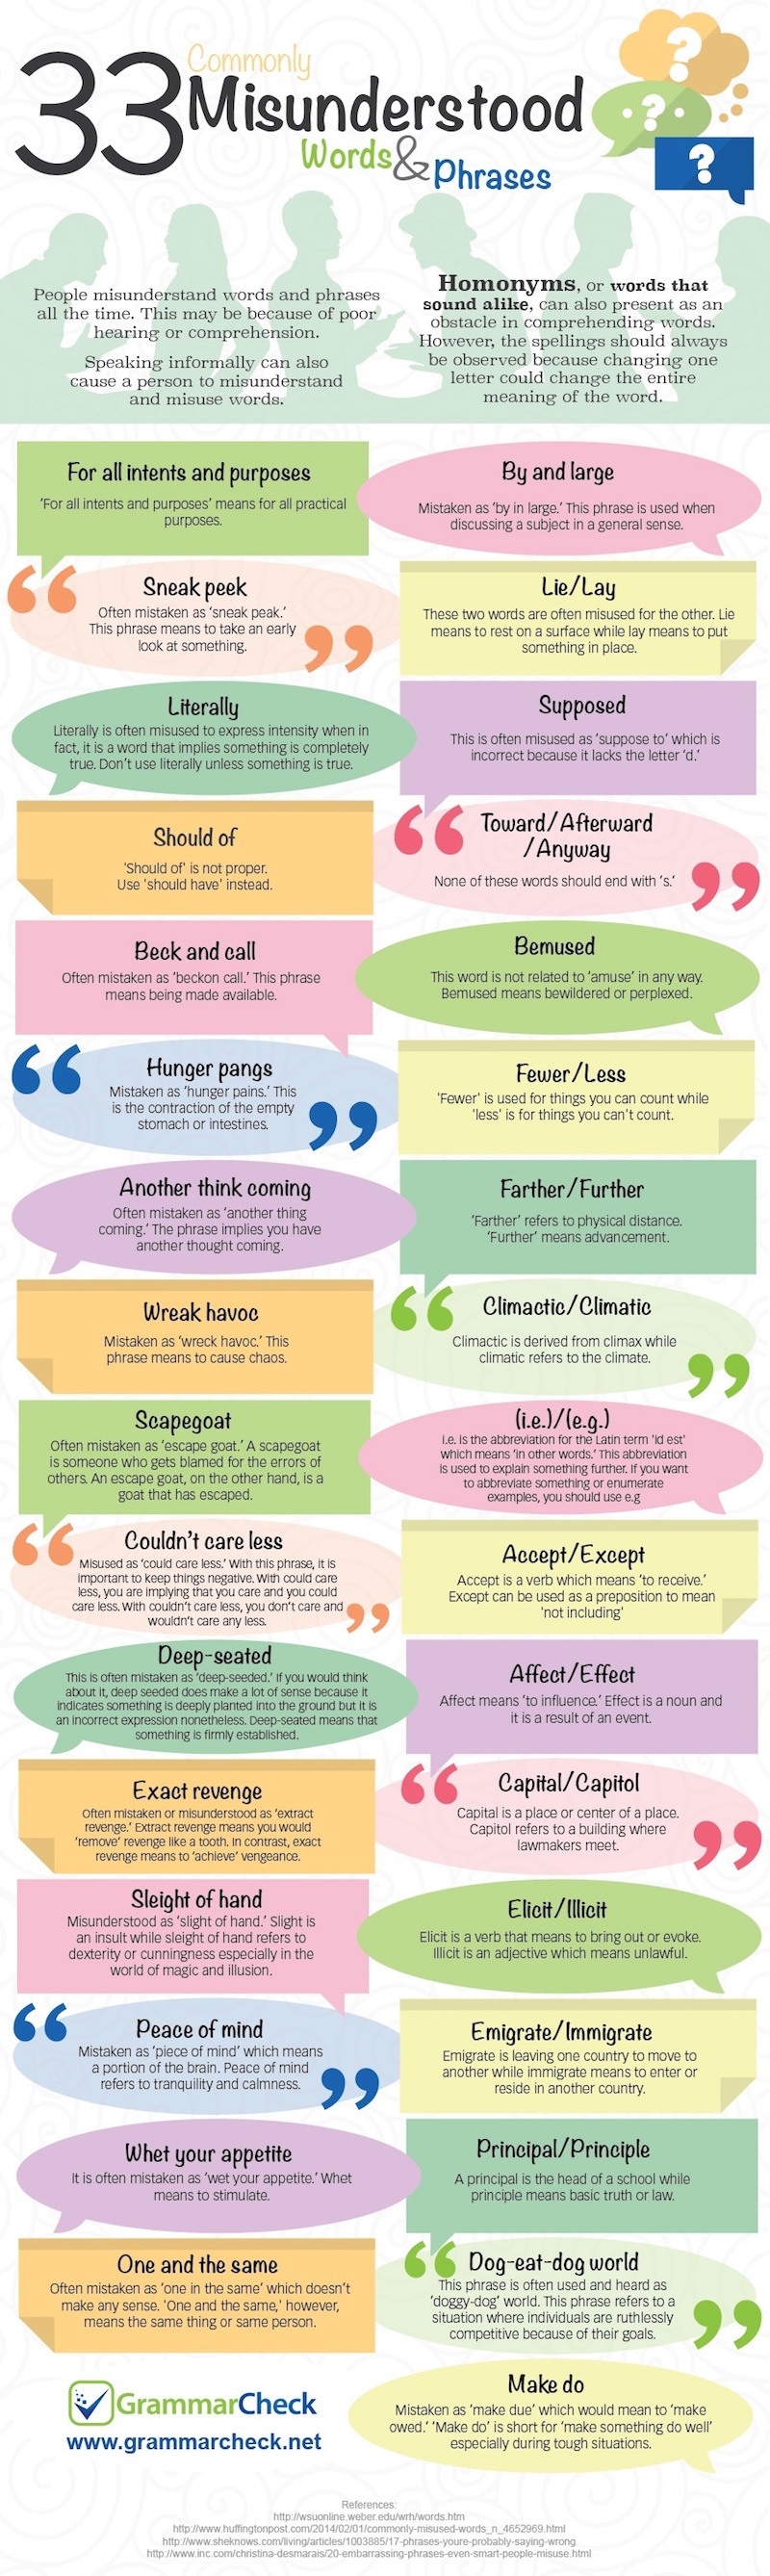 Never sound dumb again with this guide to the 33 most commonly misused English words and phrases.